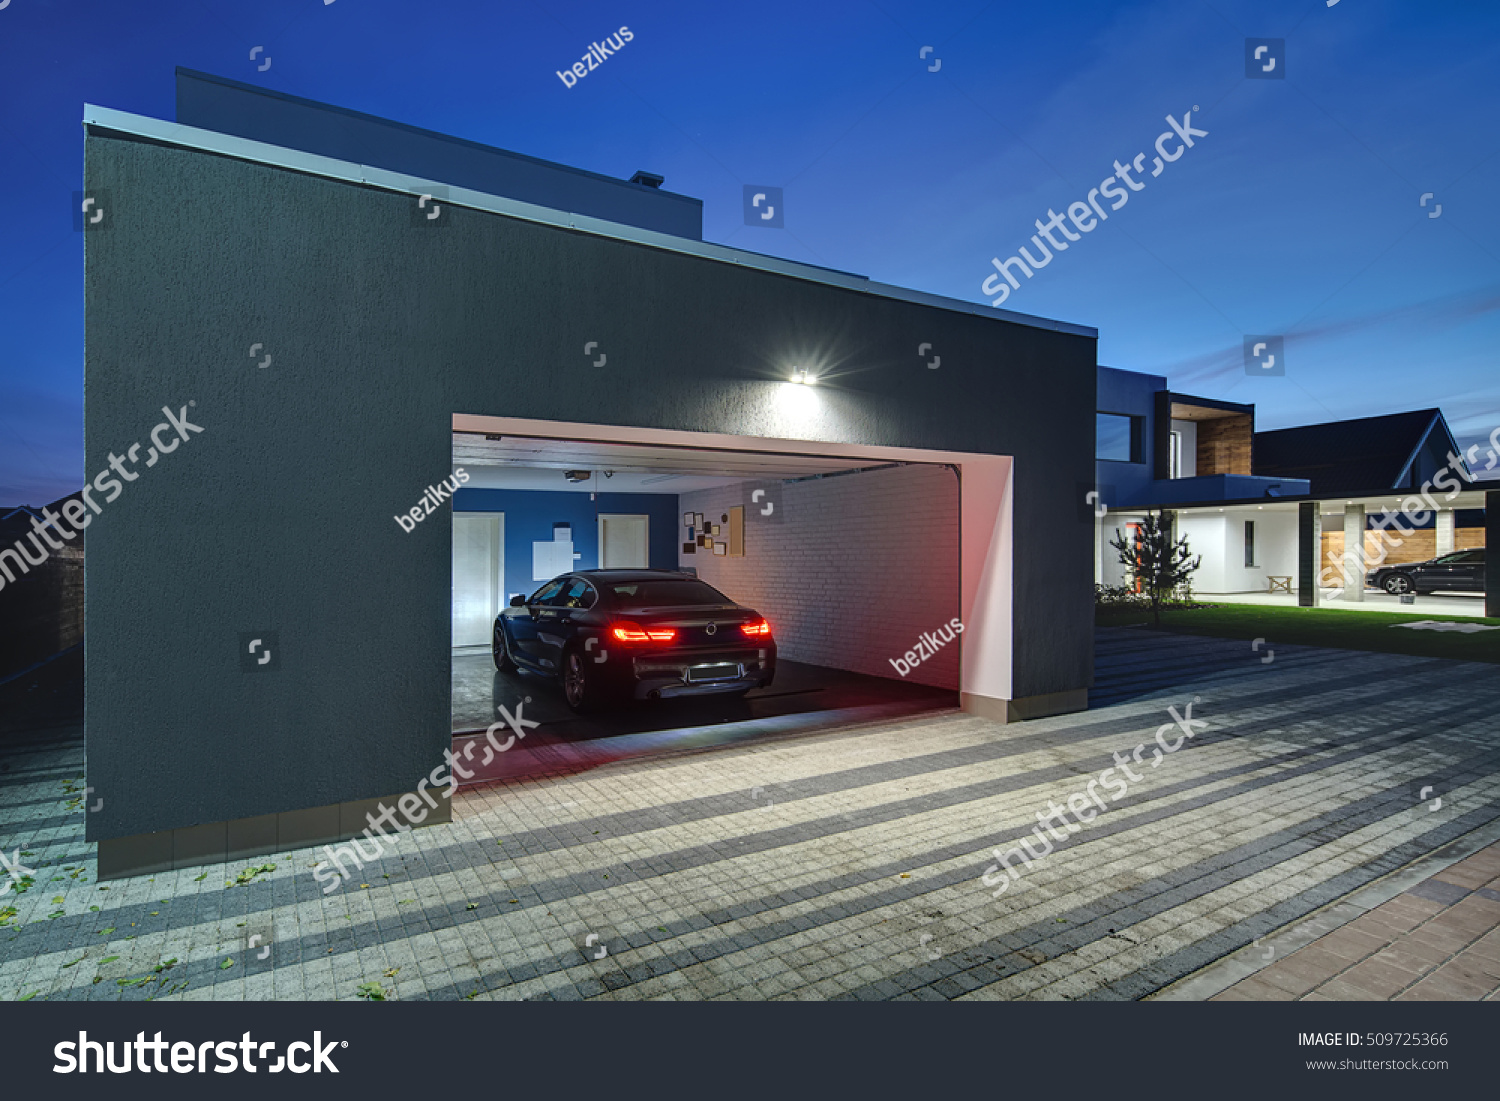 Entrance garage shining lamps modern country stock photo for Entrance from garage to house